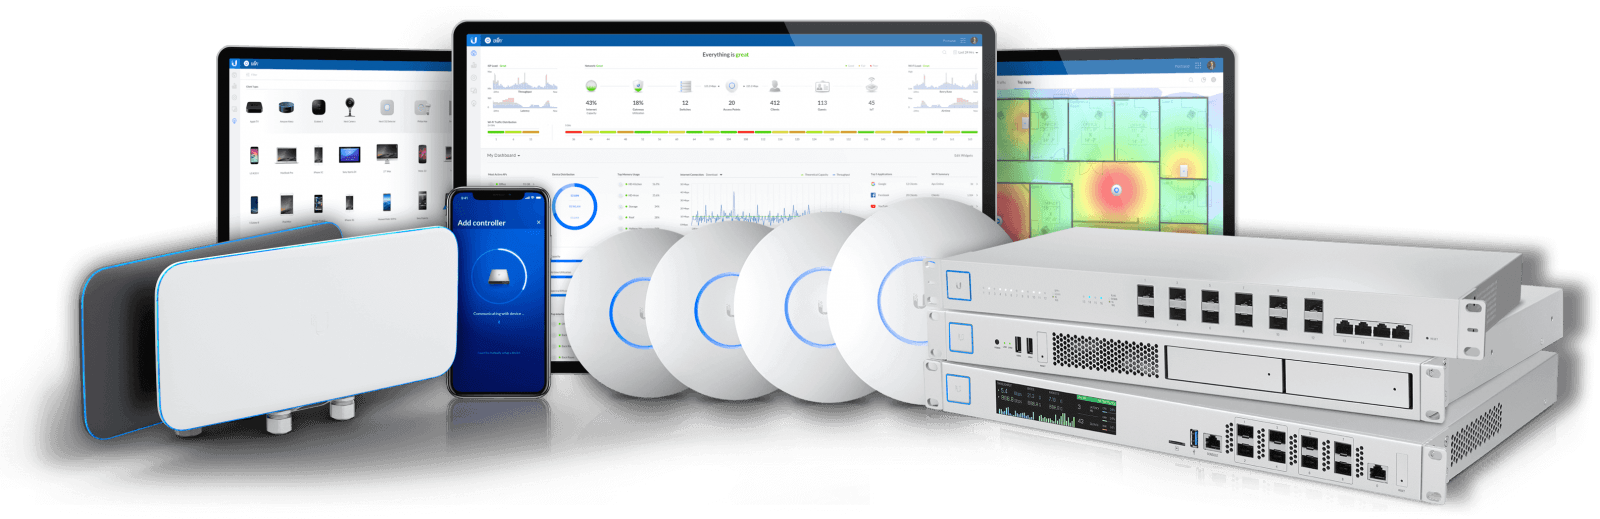 Enterprise WiFi Solution 企業WiFi系統方案 - UBNT UNIFI Ubiquiti - Hong Kong